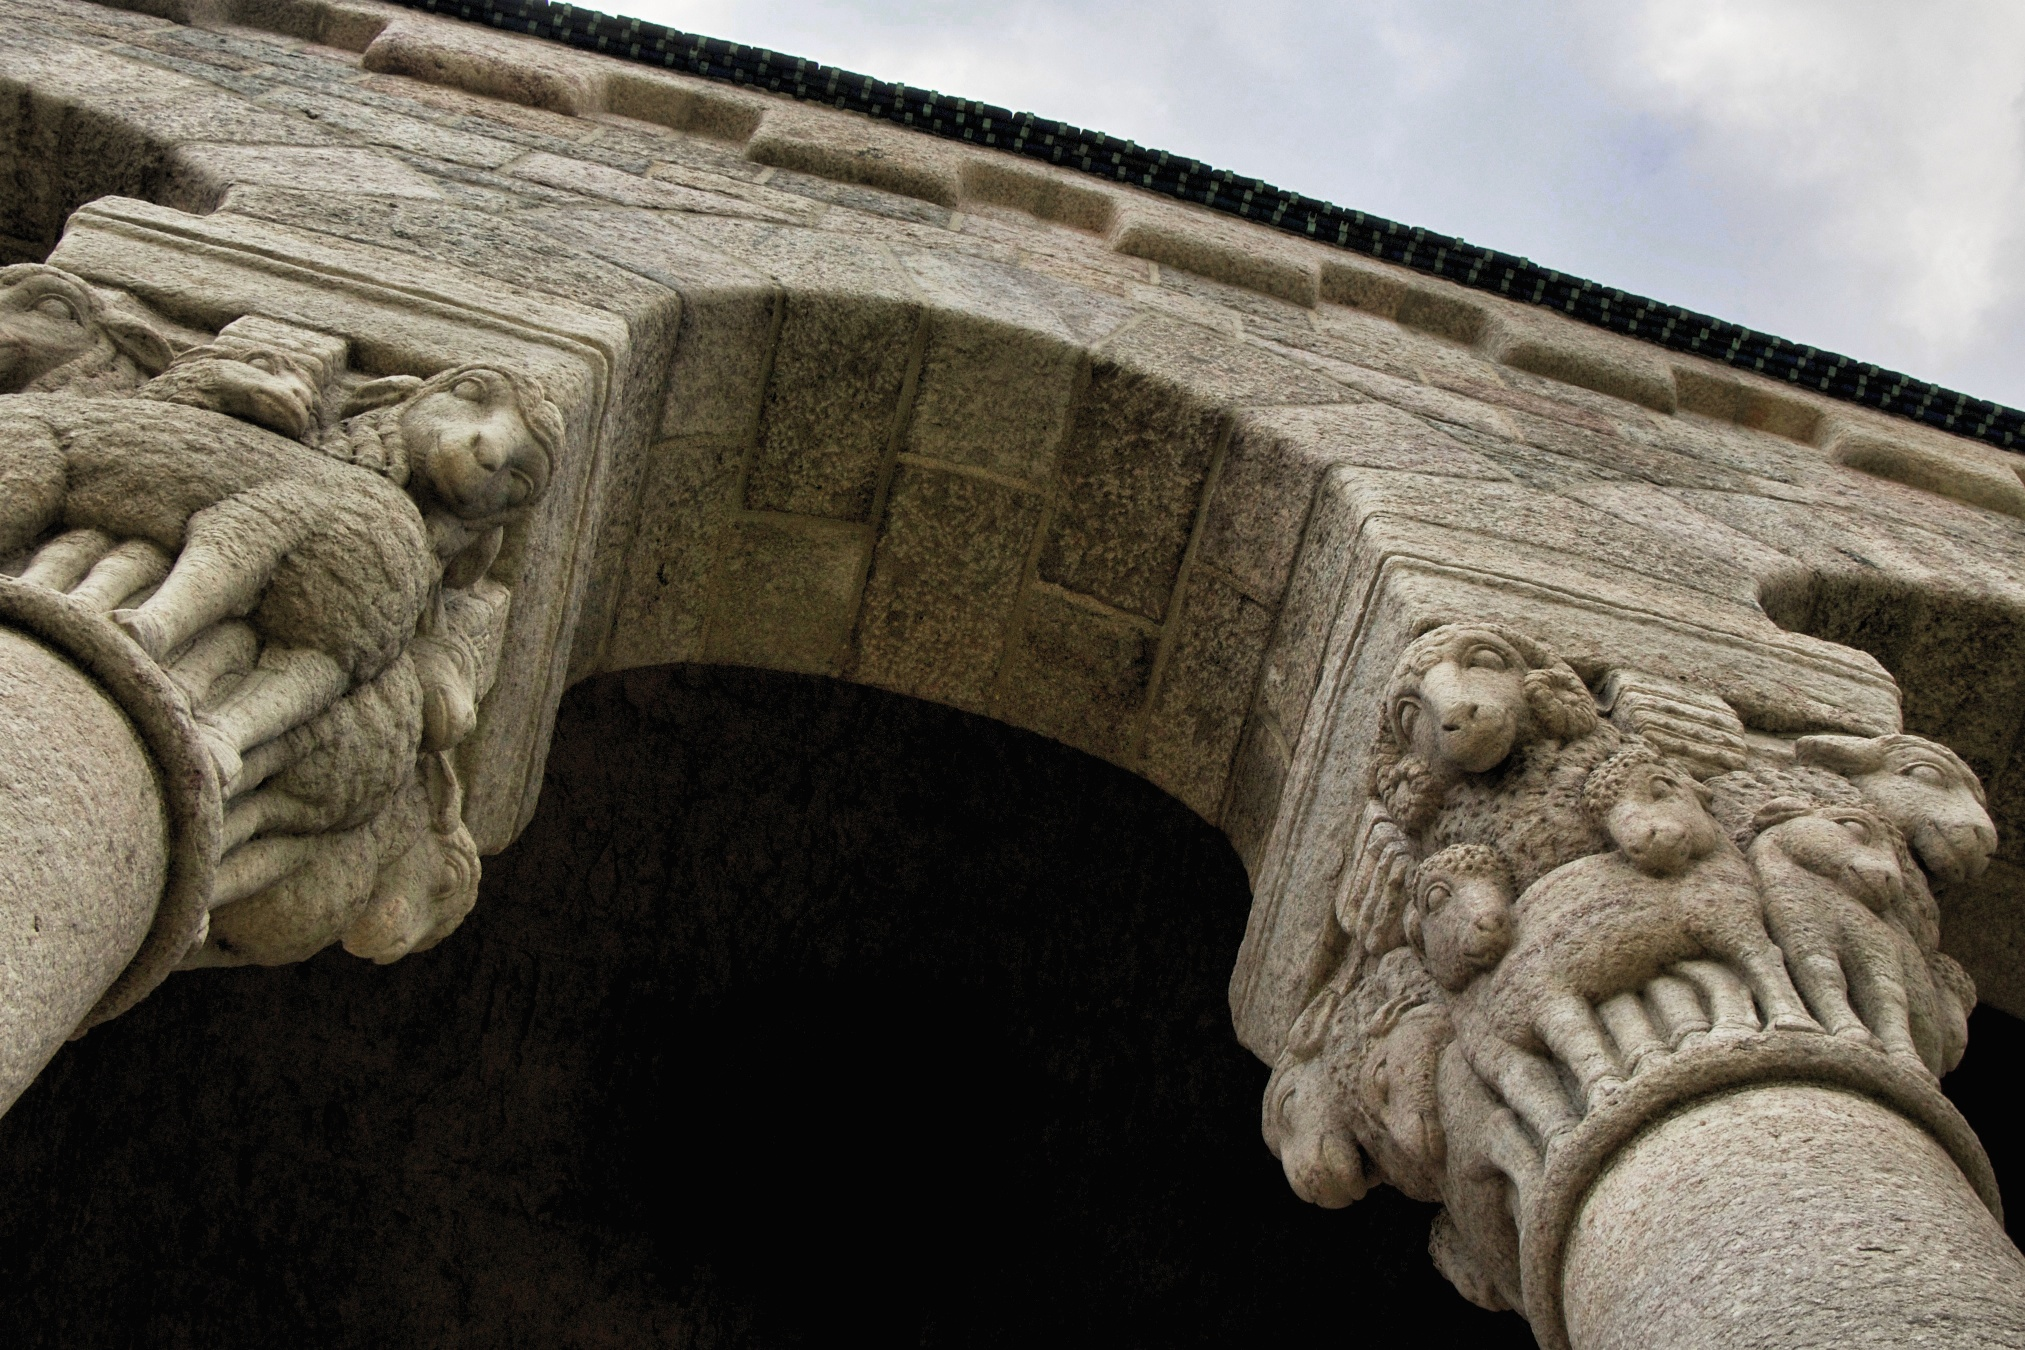 Figure 5: Two large capitals depicting families of rams, ewes, and lambs help support the roof on the south side of Glencairn's tower.